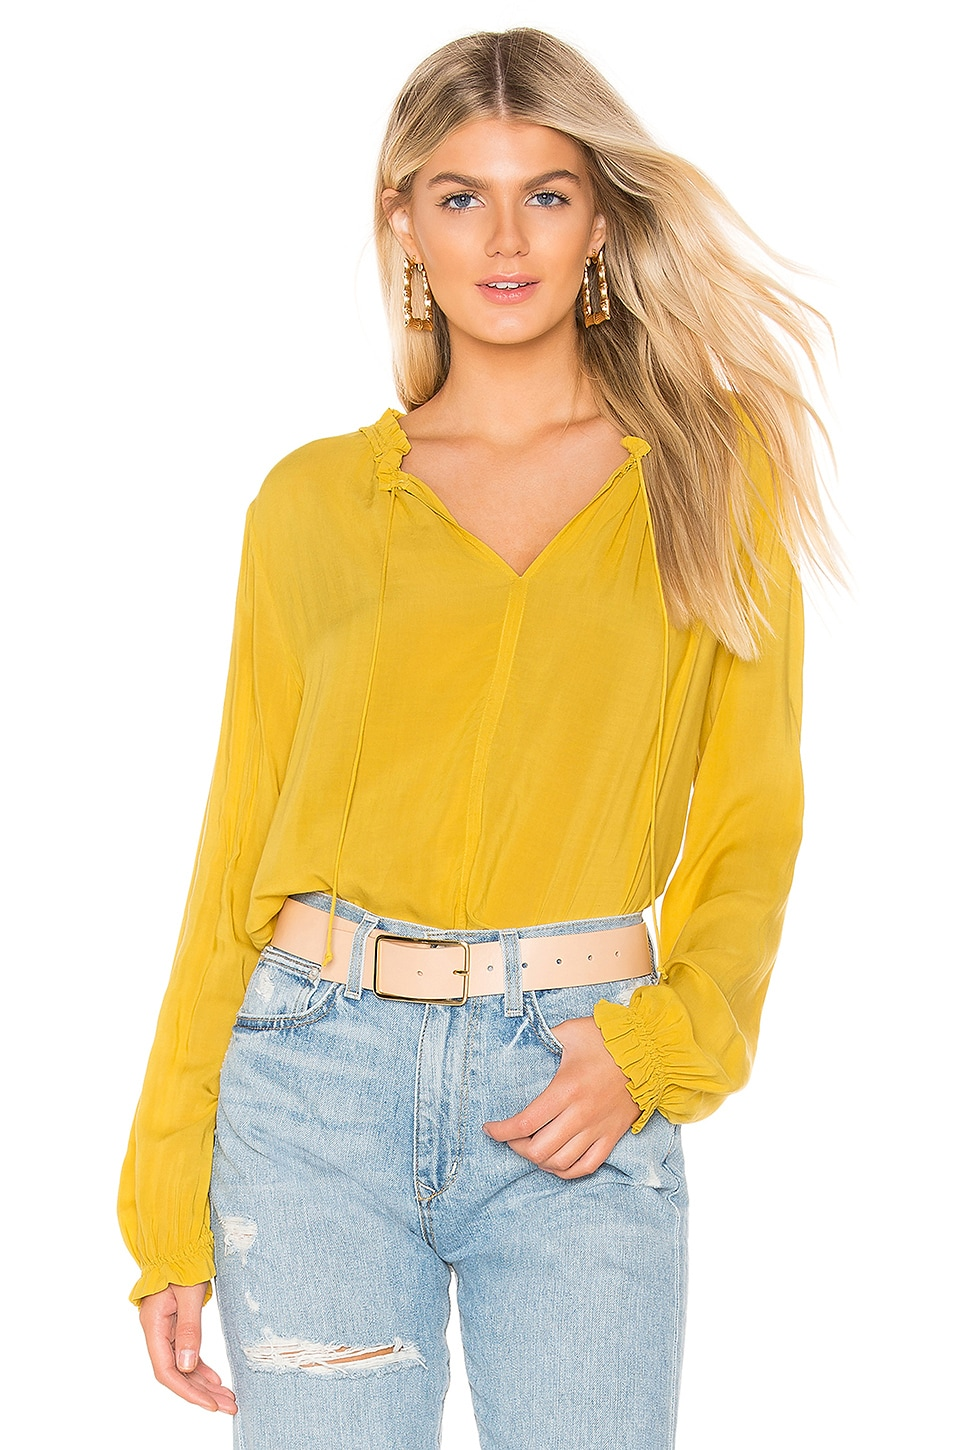 Velvet by Graham & Spencer Samantha Blouse in Canary